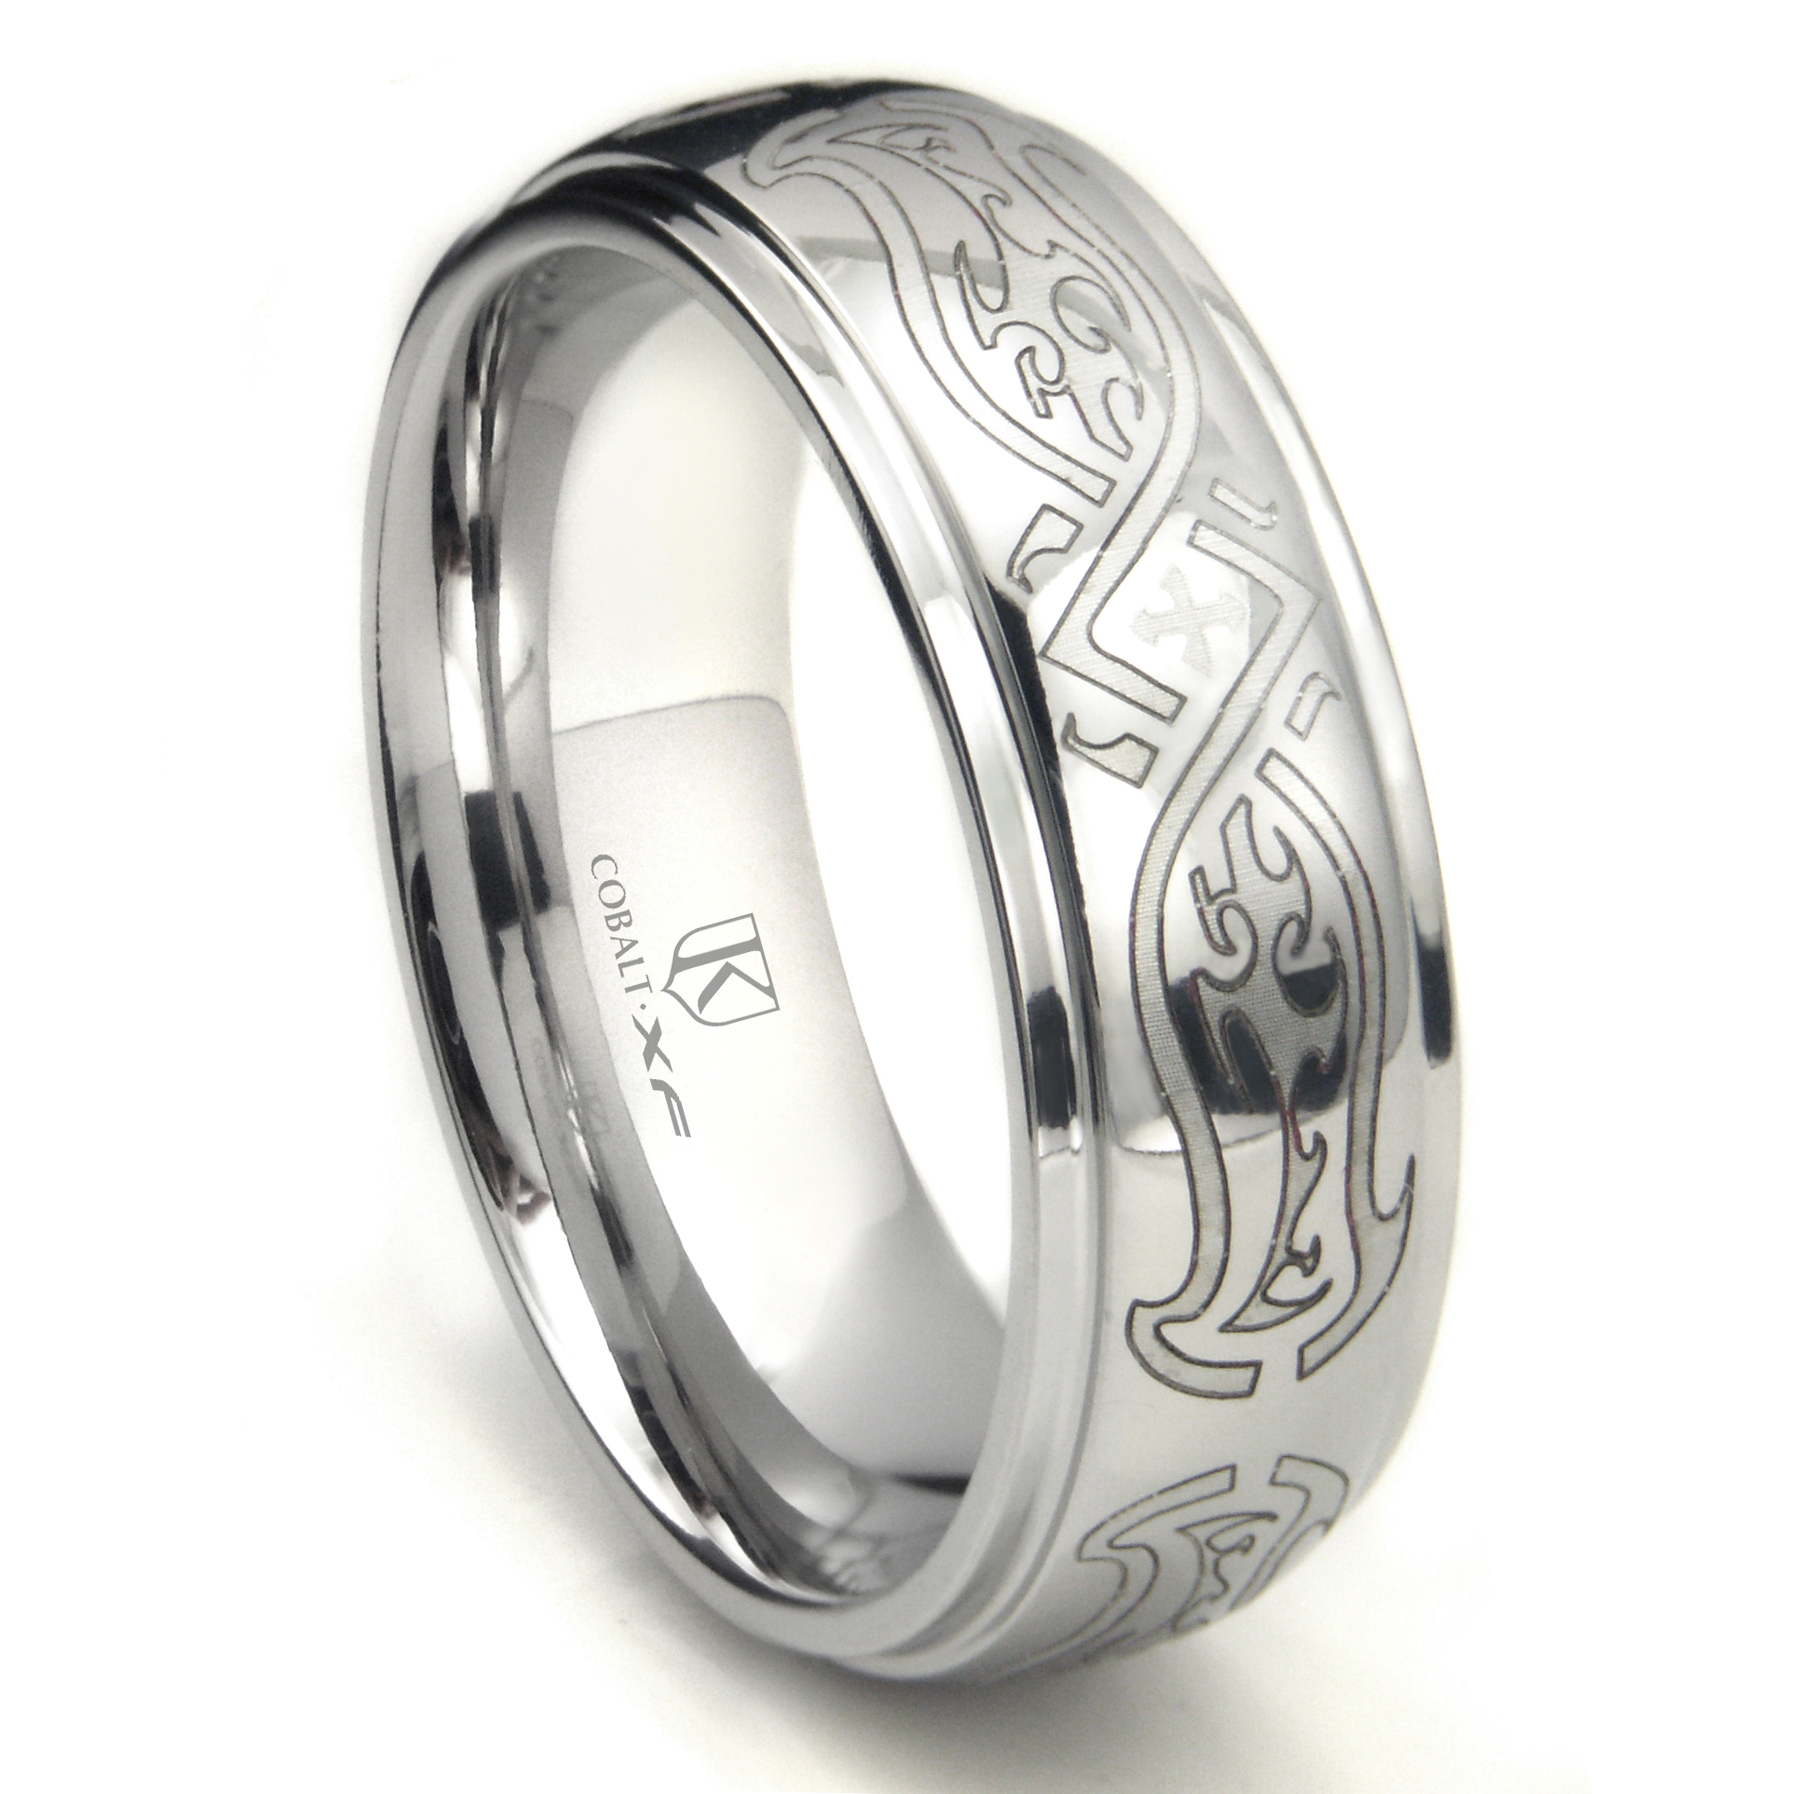 soul gents mo rings gaelic my cara ring wedding anam original mate white